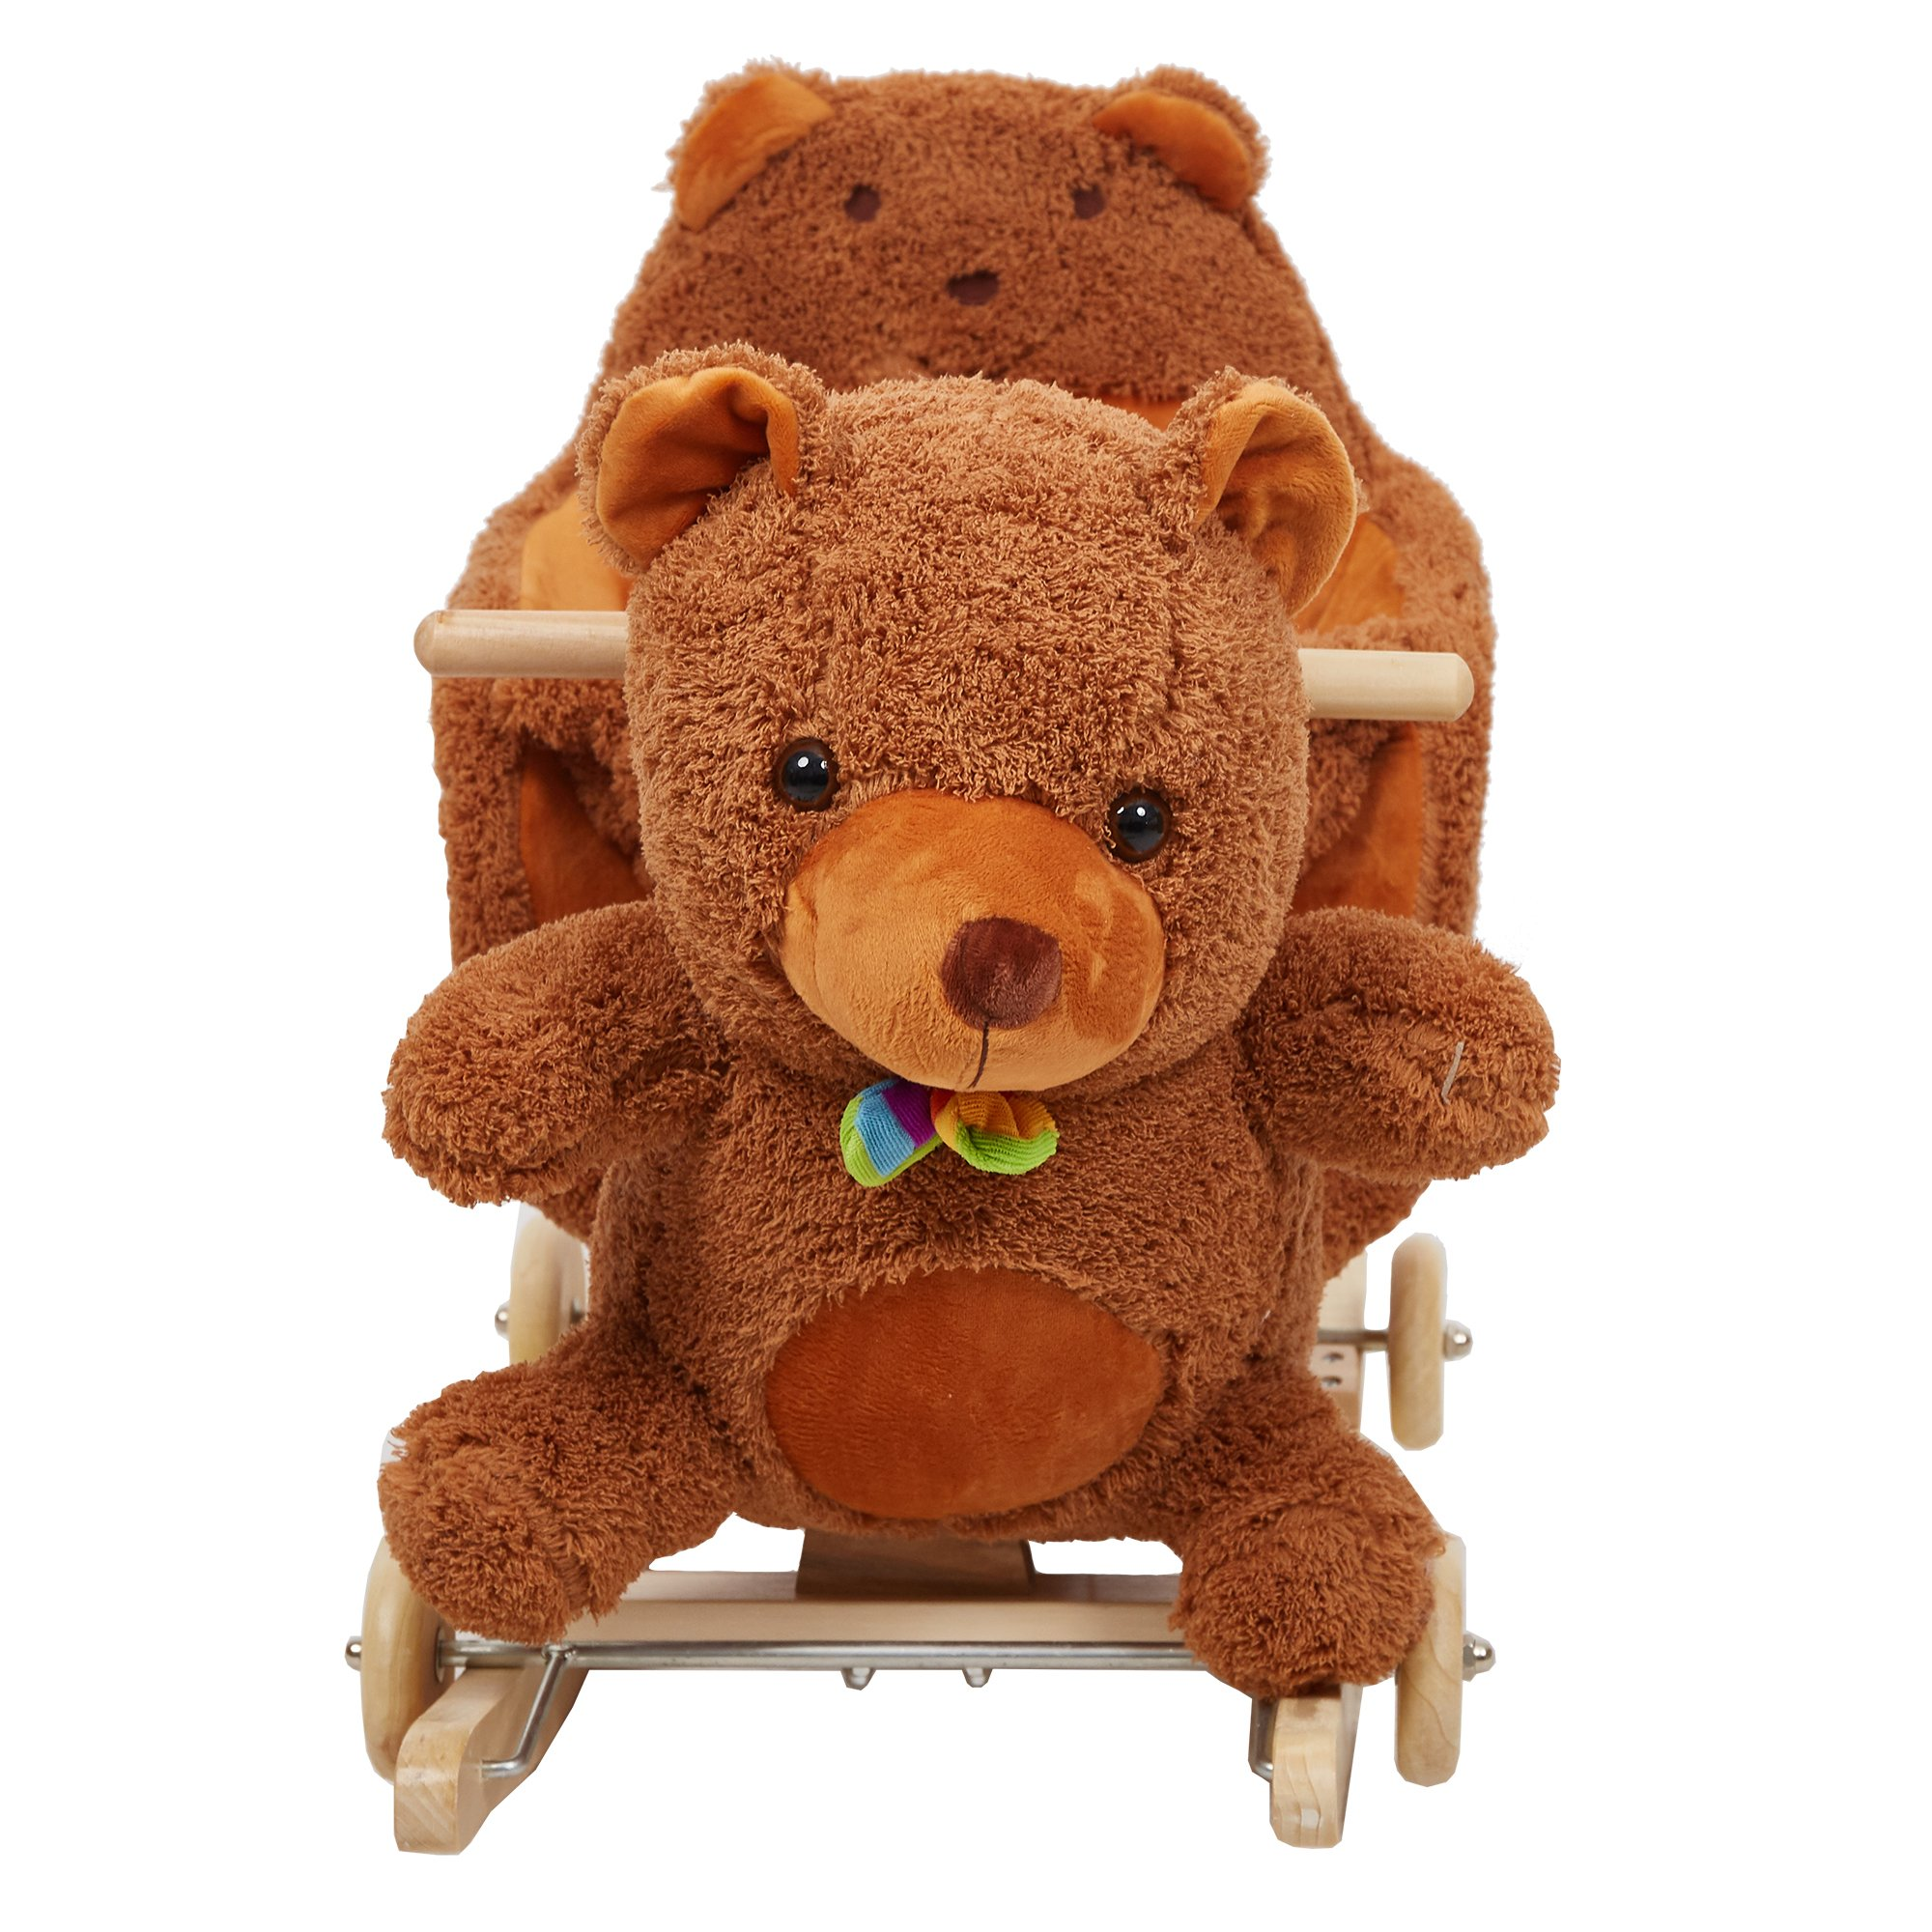 Lucky Tree Rocking Horse Wooden Riding Toys Plush Brown Bear Ride on Toy with Wheels for kids 18 Months-4 Years,Bear by Lucky Tree (Image #1)